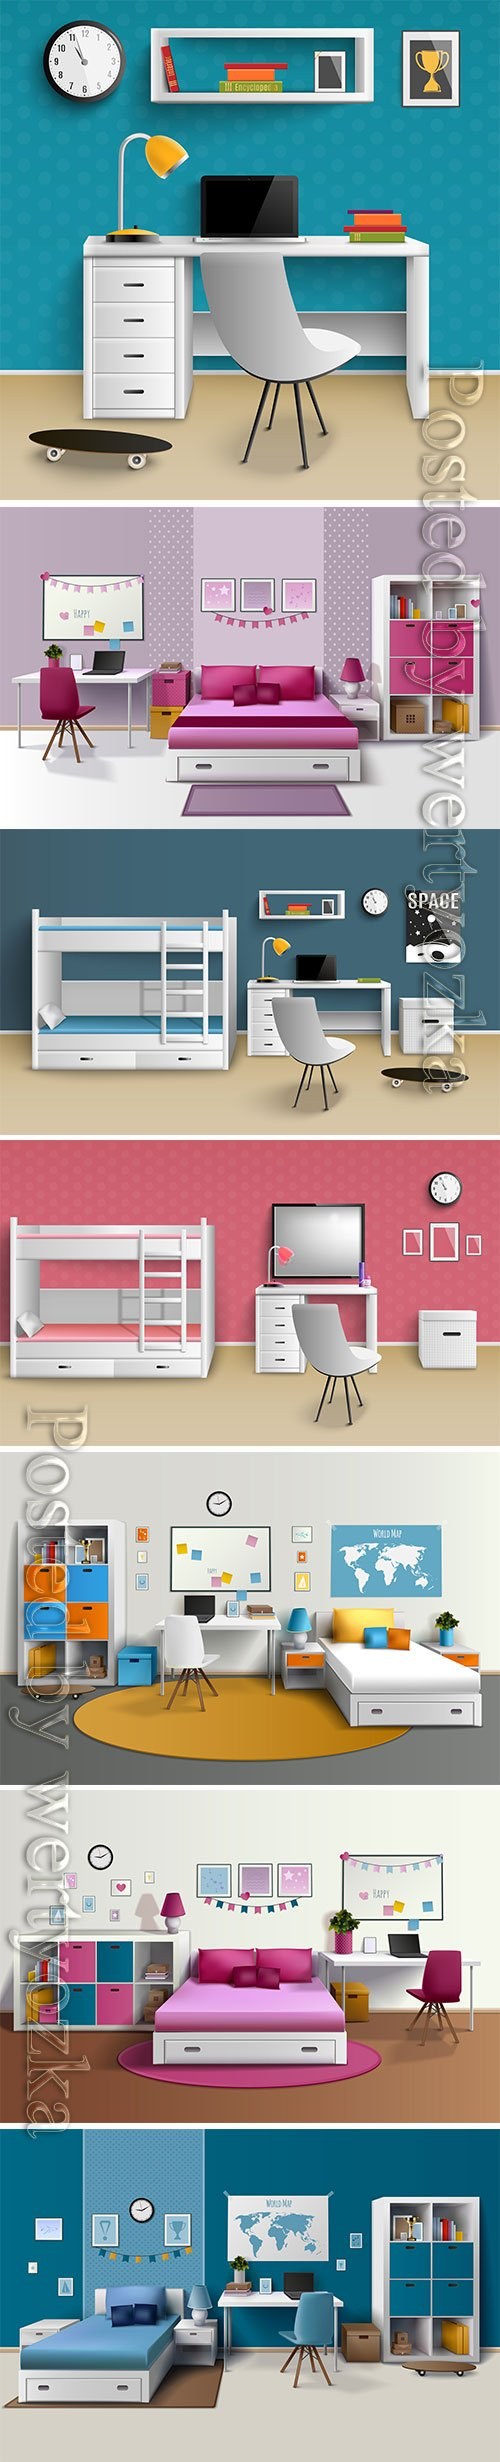 Realistic home interior vector template # 6